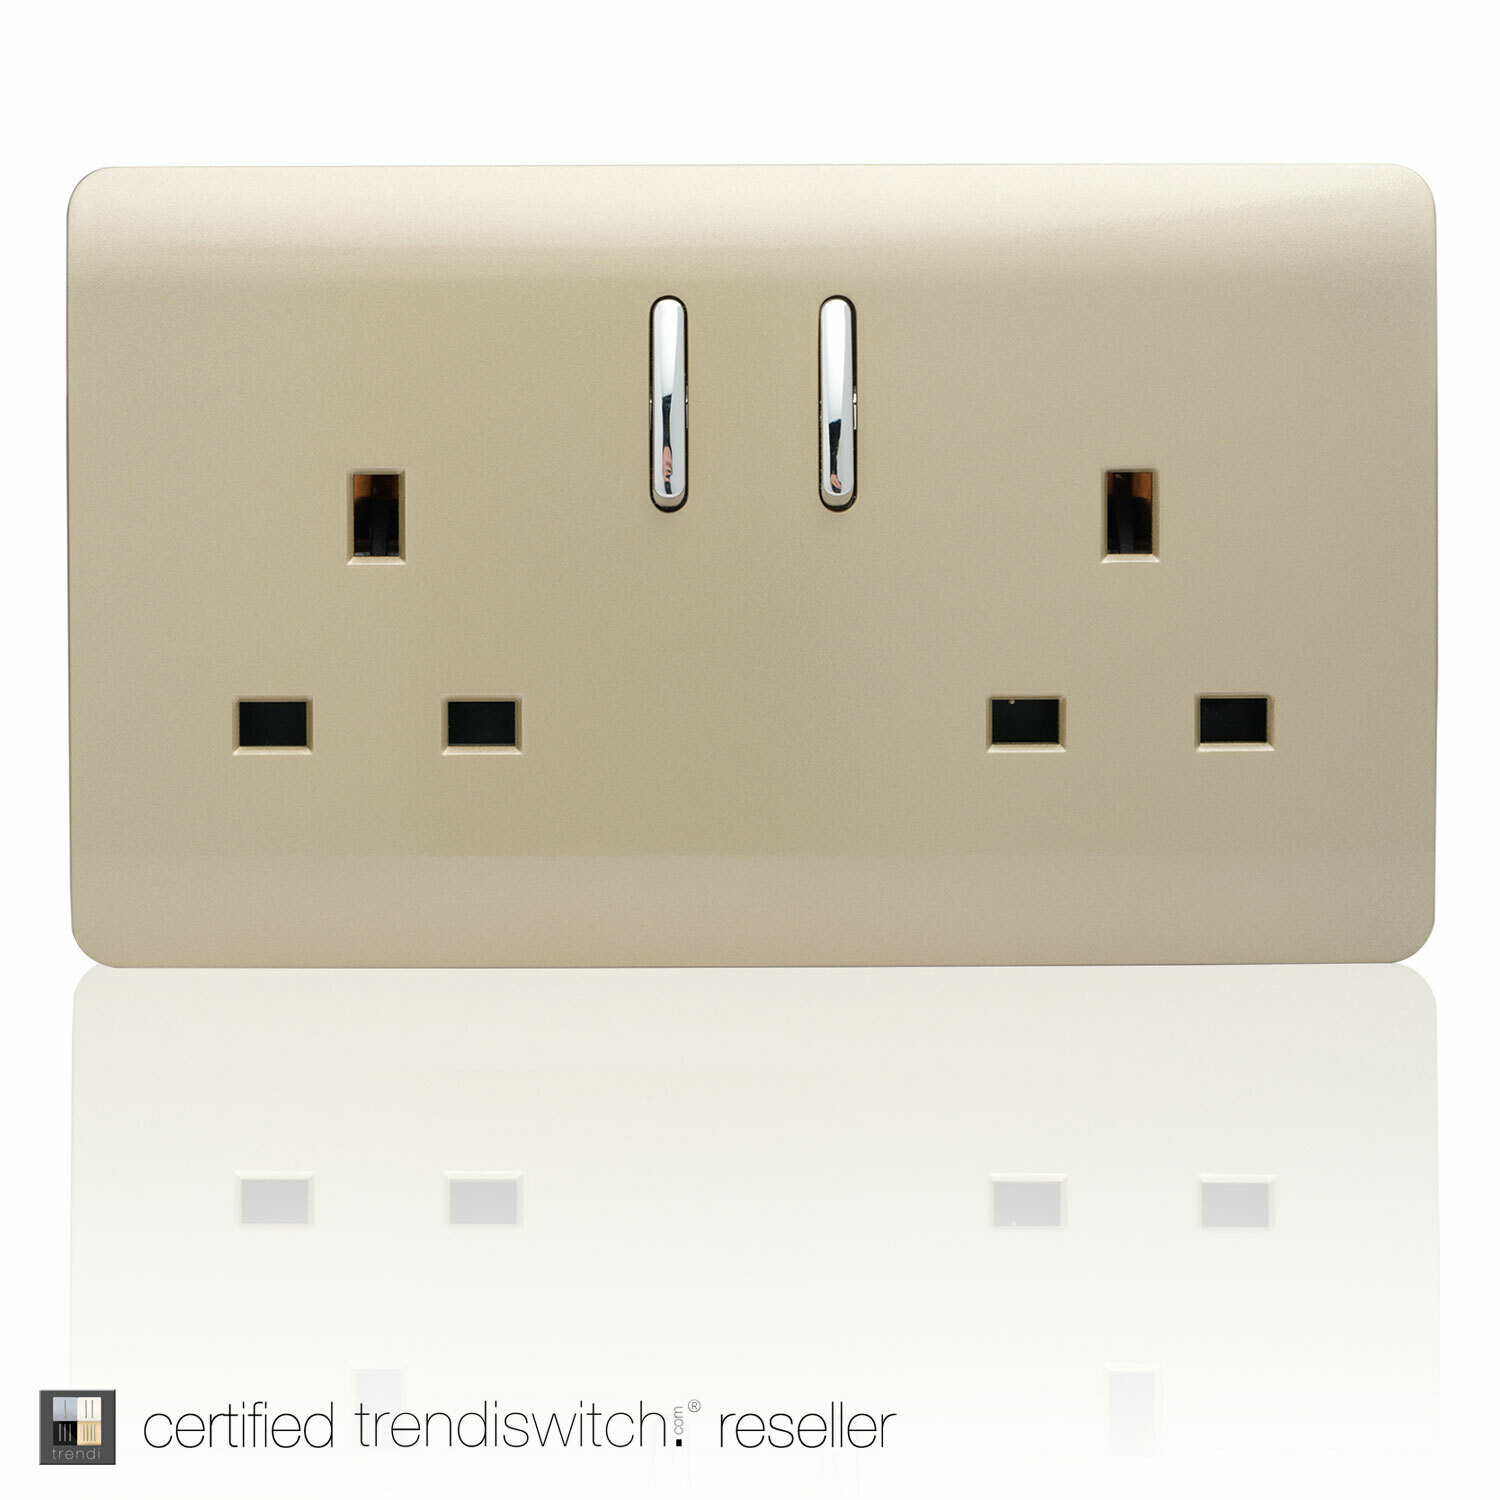 Trendi, Artistic Modern 2 Gang 13Amp Short Switched Double  Socket Champagne Gold Finish, BRITISH MADE, 5yrs warranty